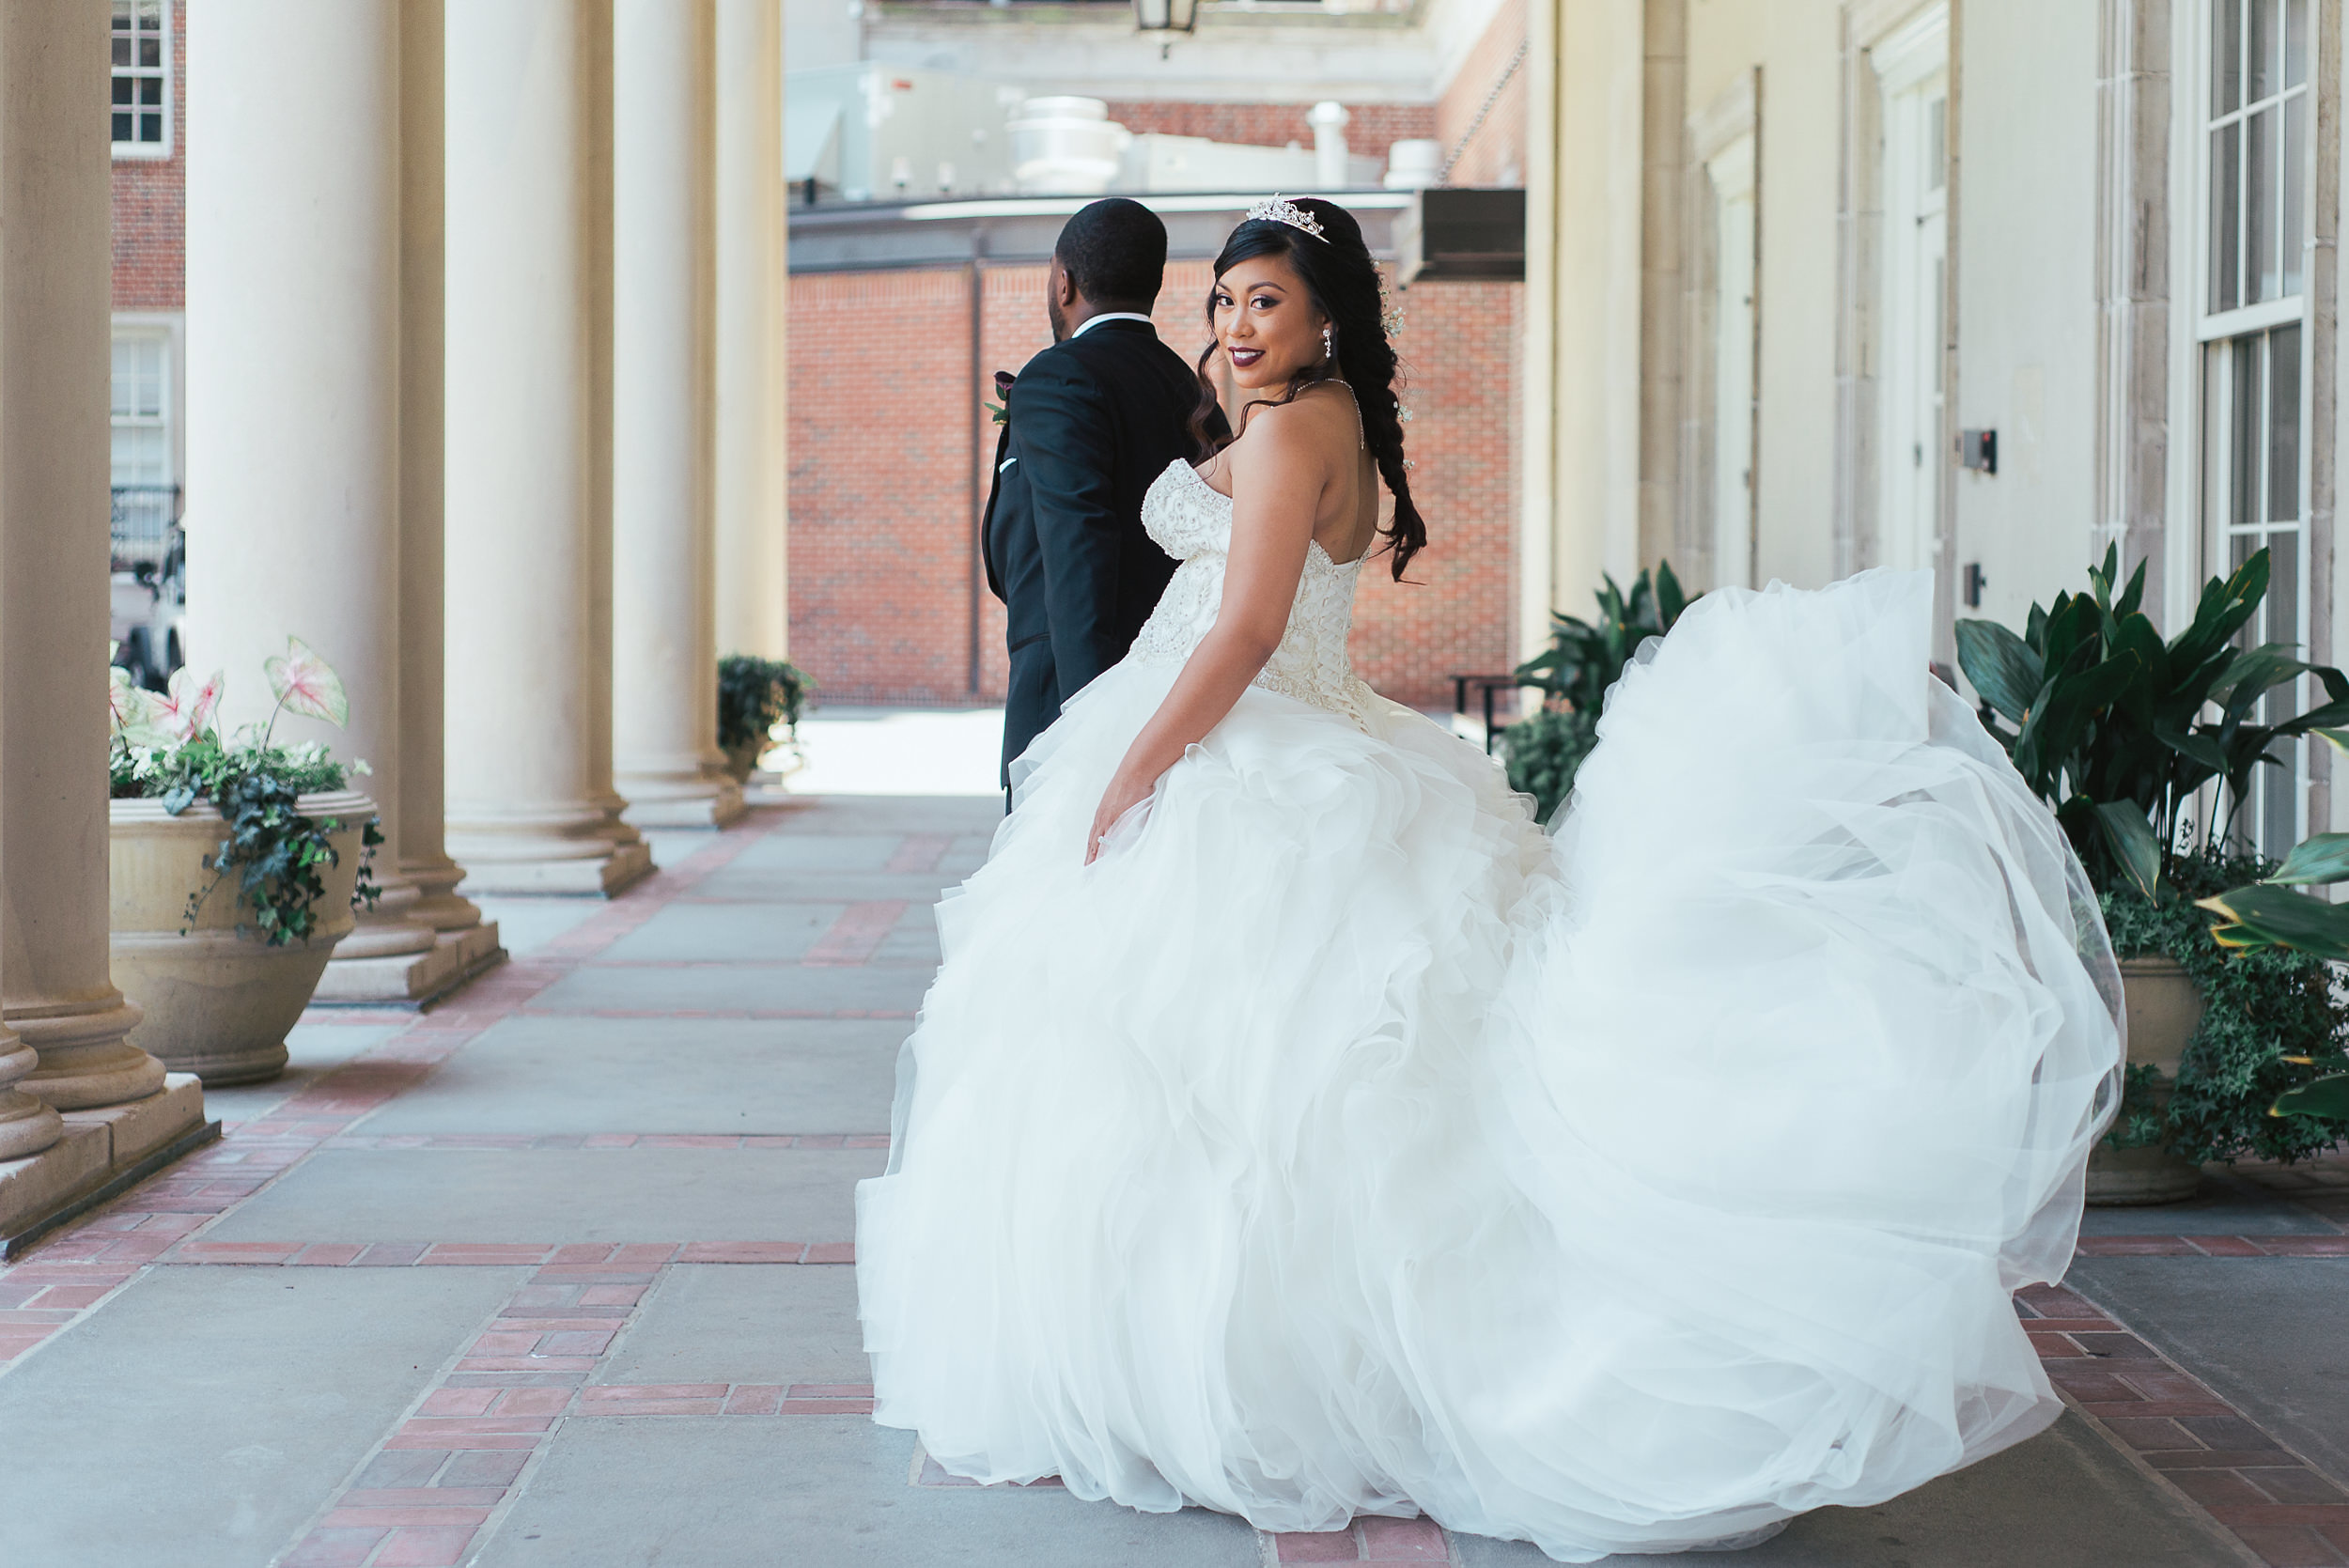 Biltmore Ballrooms Wedding | Atlanta Georgia Photographer LeahAndMark